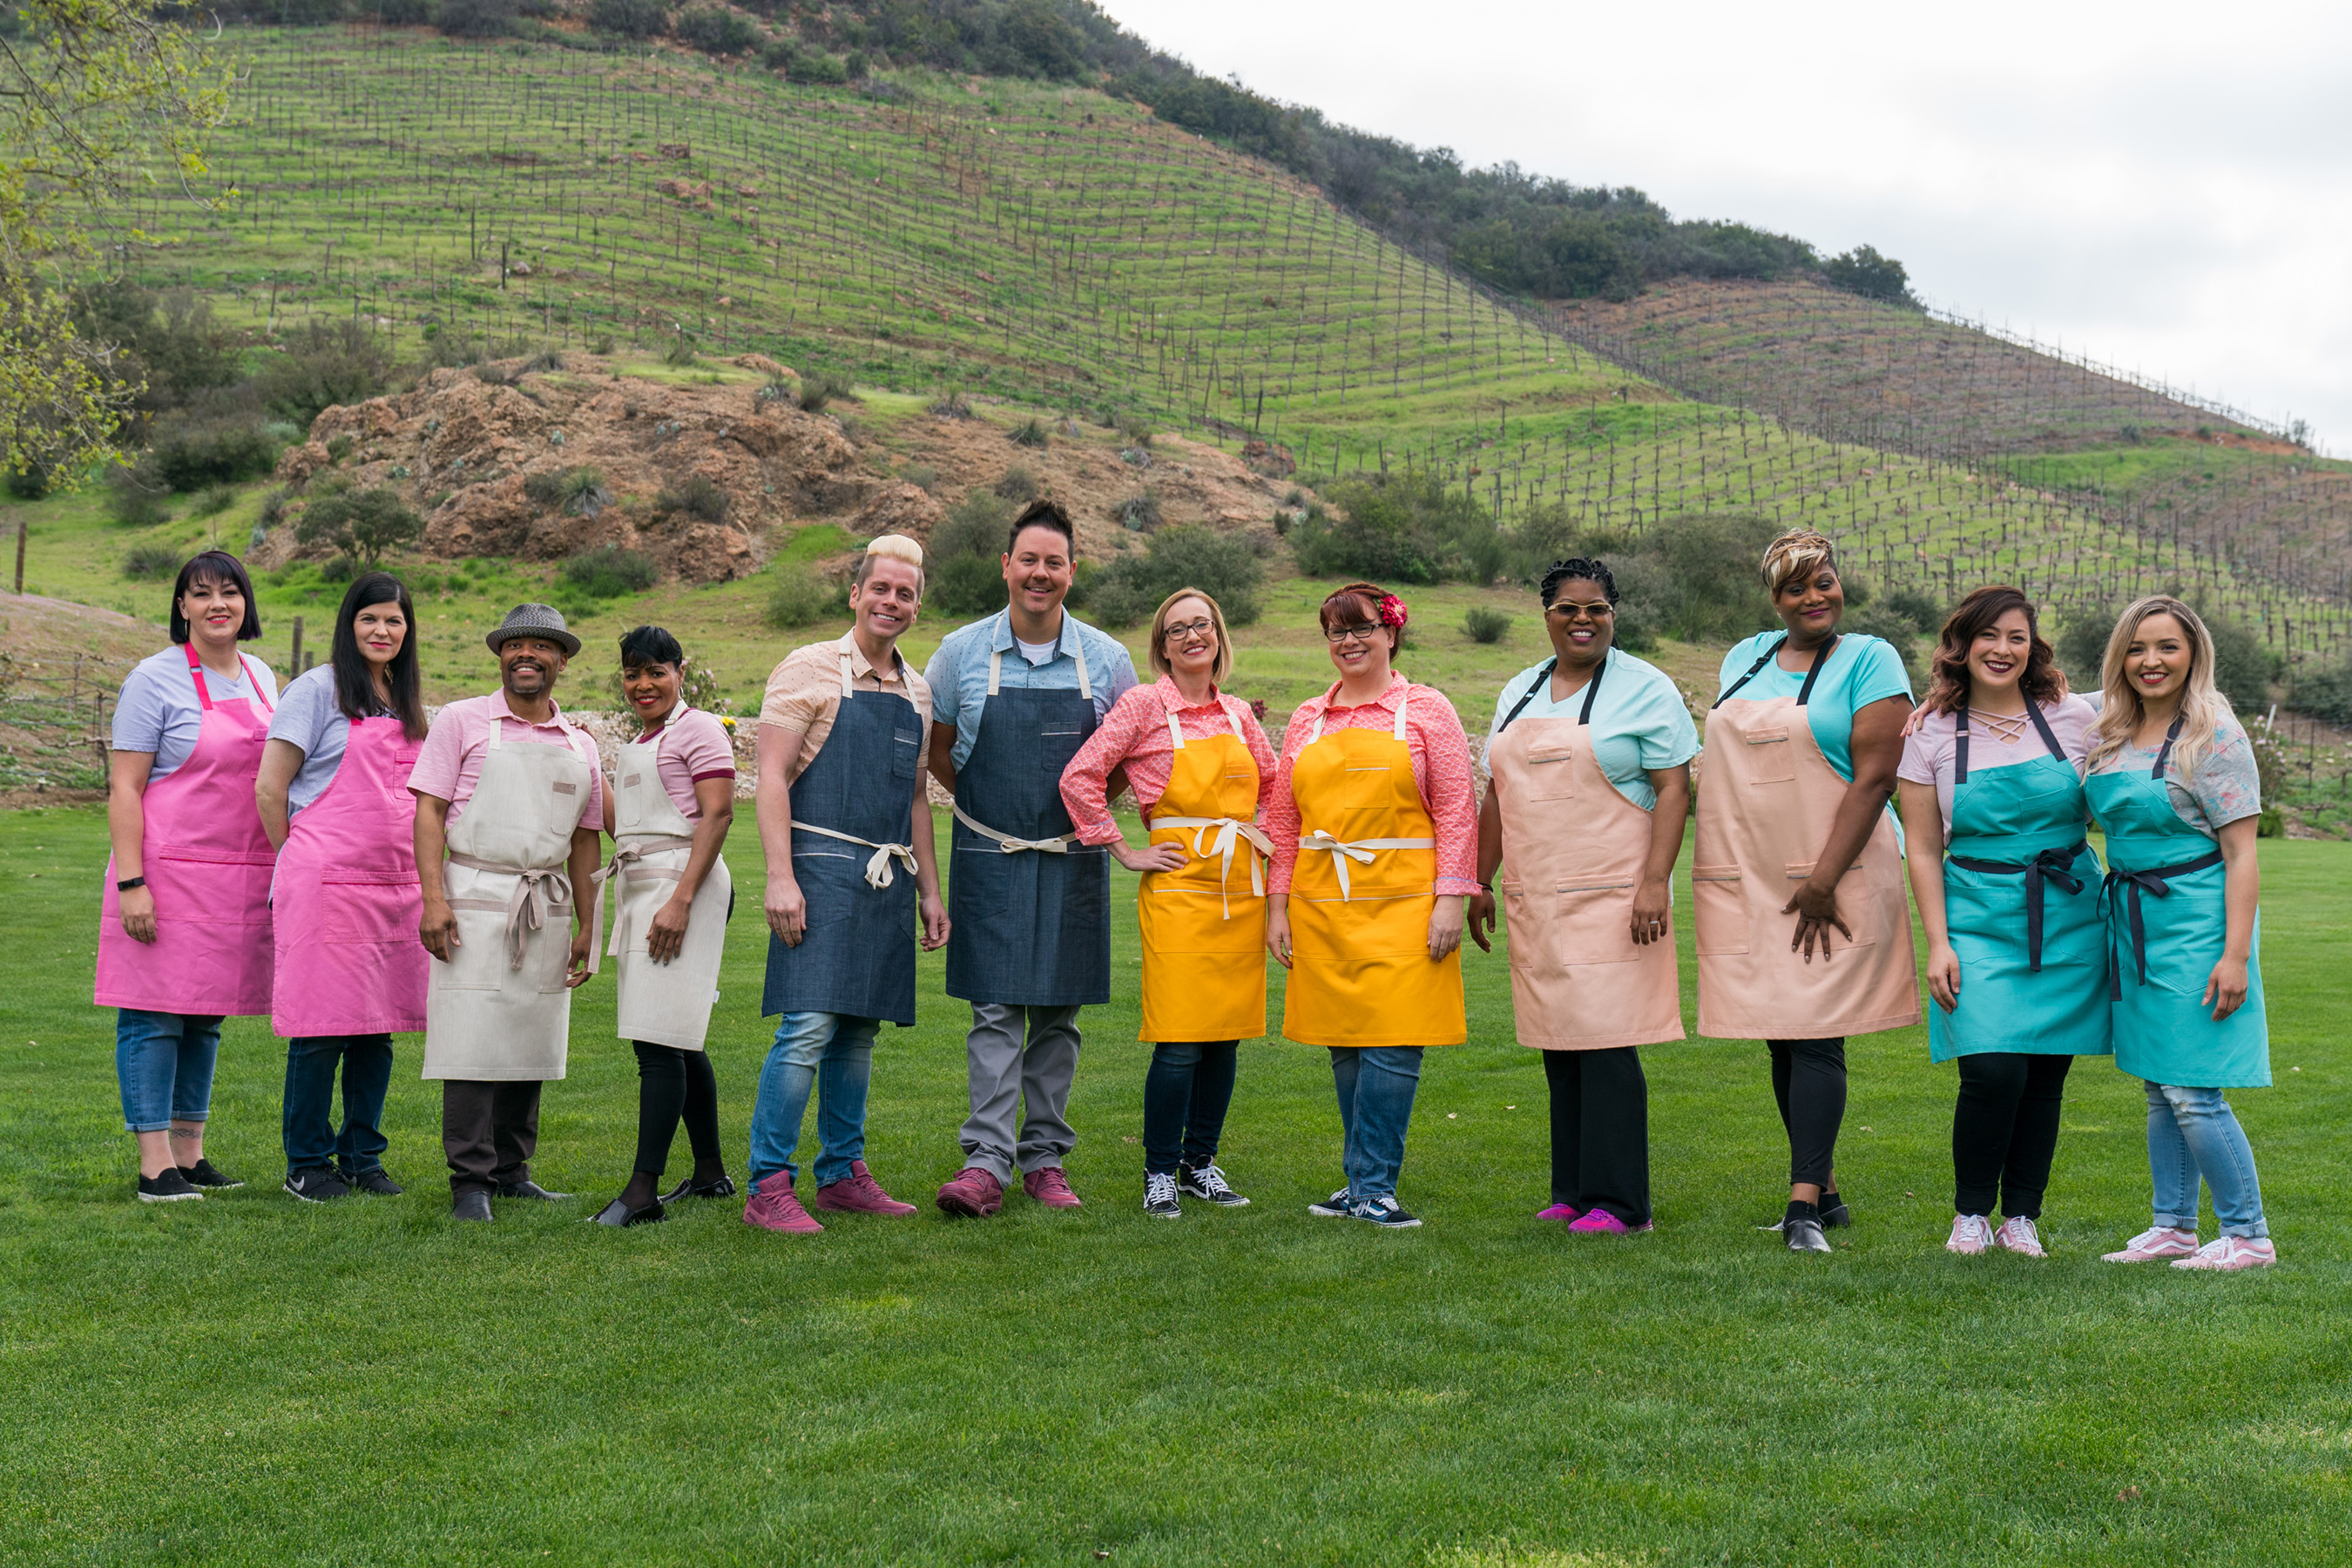 The Contestants of Food Network's Wedding Cake Championship